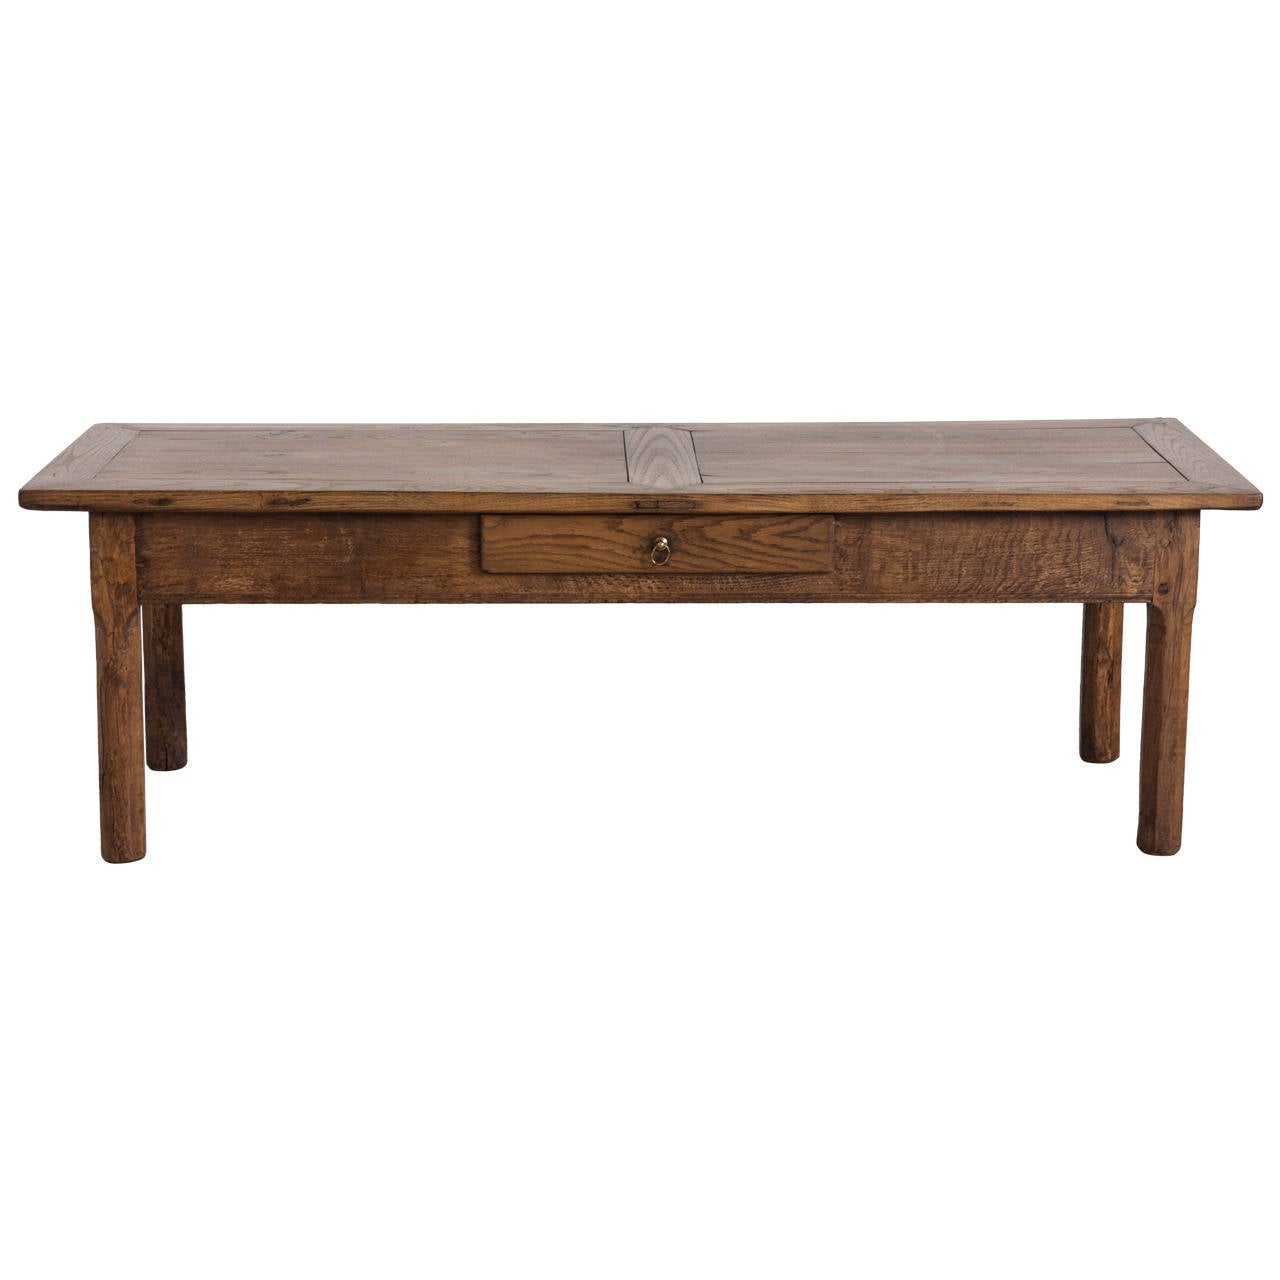 19th Century French Rustic Coffee Table Of Solid Oak From Normandy At 1stdibs